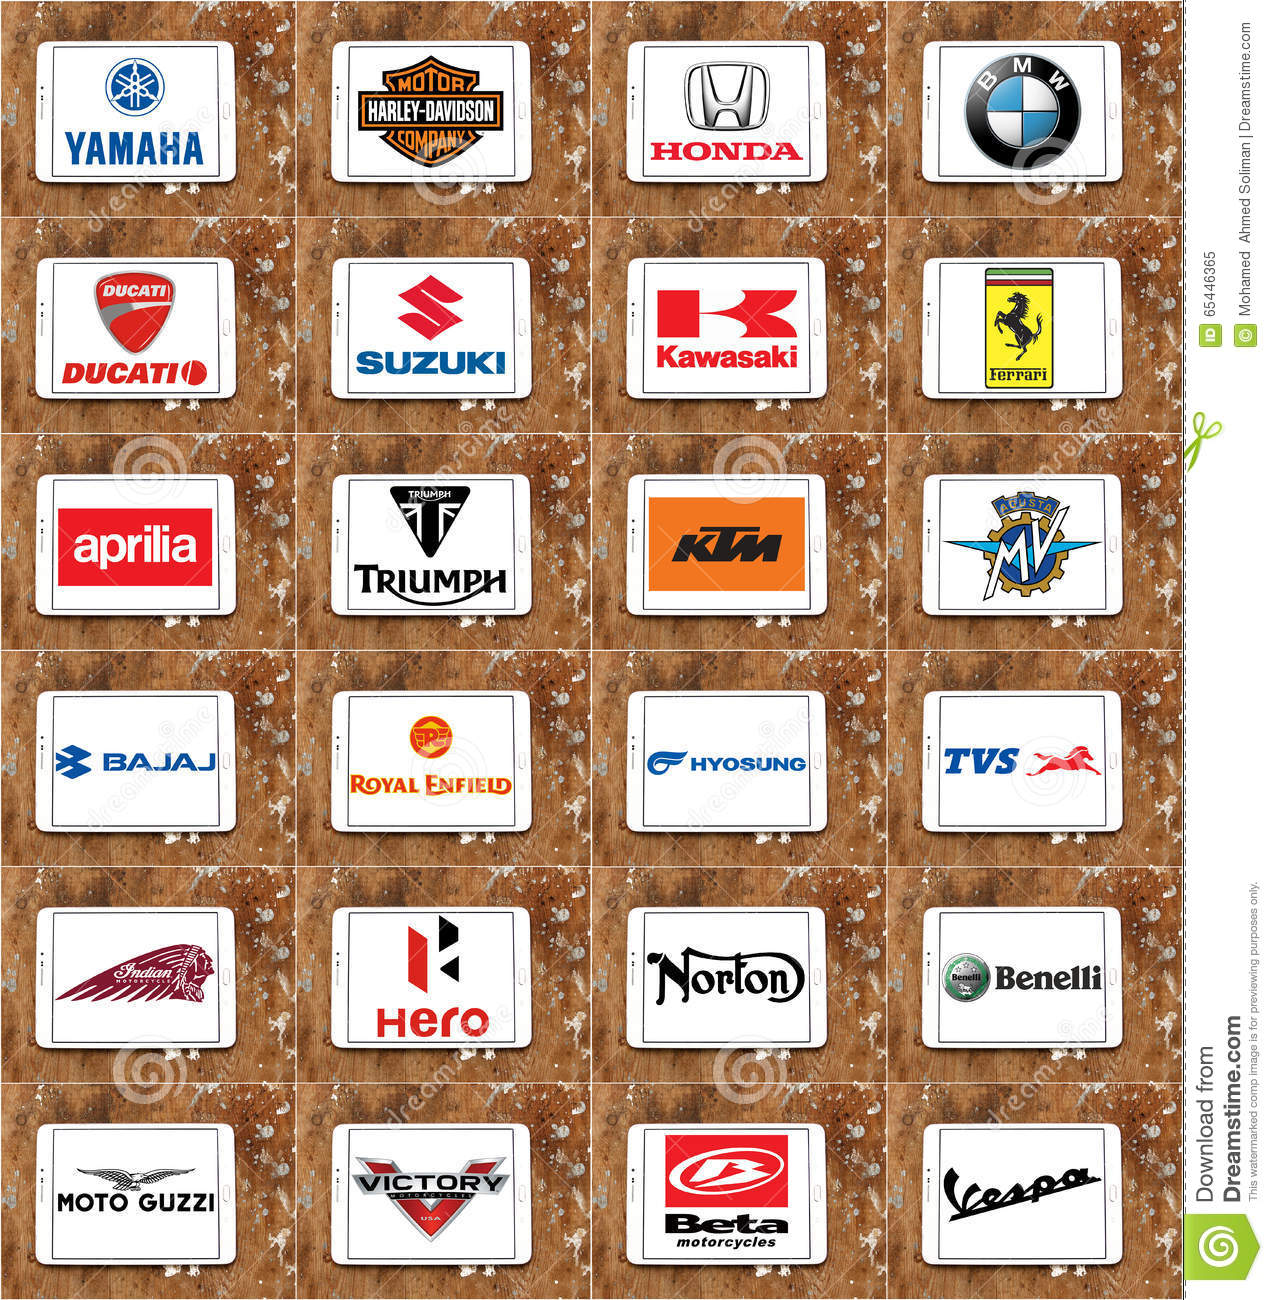 Motorcycles Producers Logos And Brands Editorial Image - Image ...